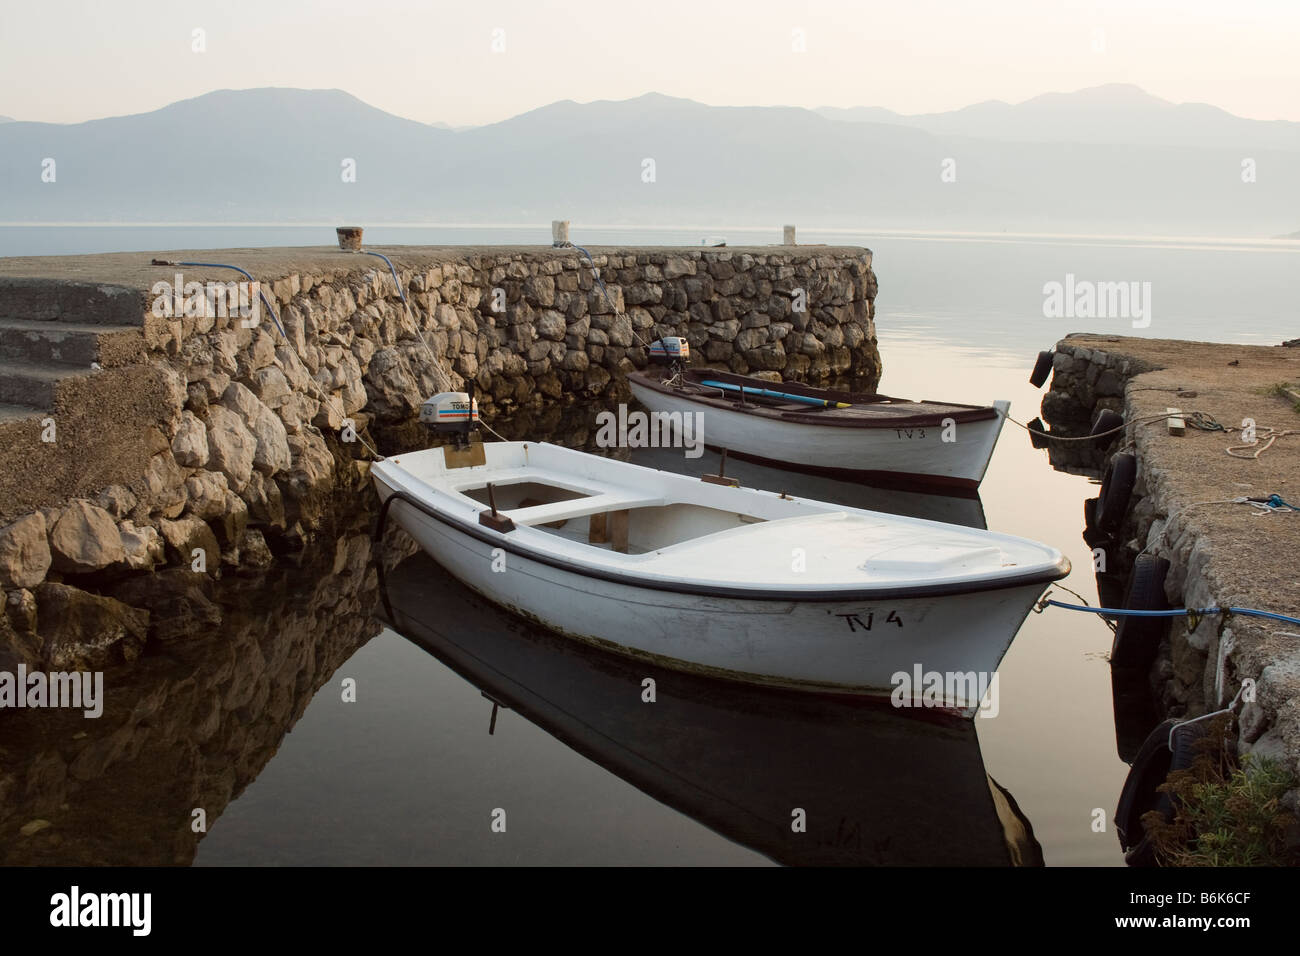 two wooden boats in a little bay in the morning, Kotor, Montenegro Stock Photo